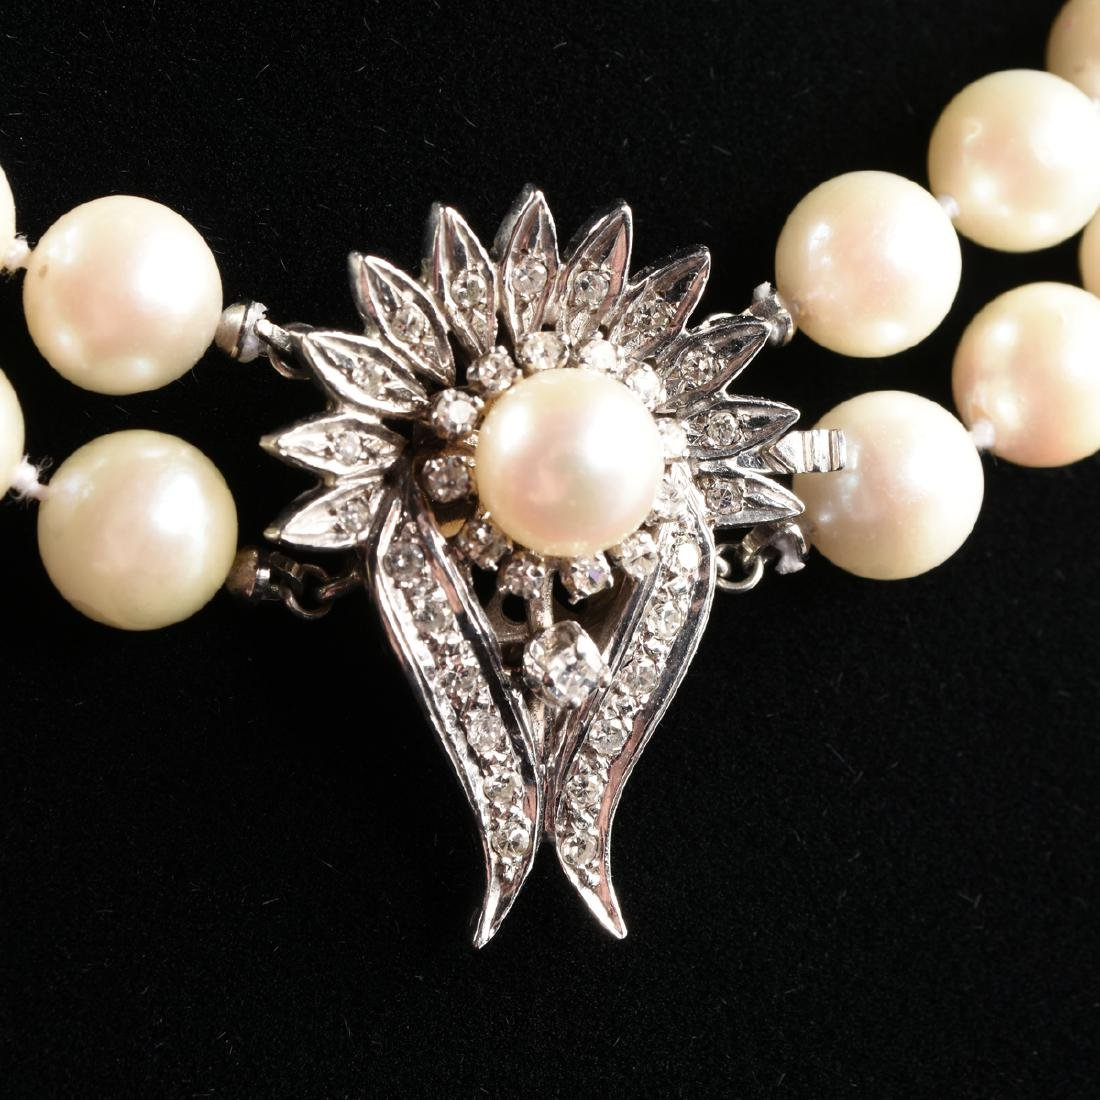 A DOUBLE STRAND AKOYA CULTURED PEARL NECKLACE WITH A - 2